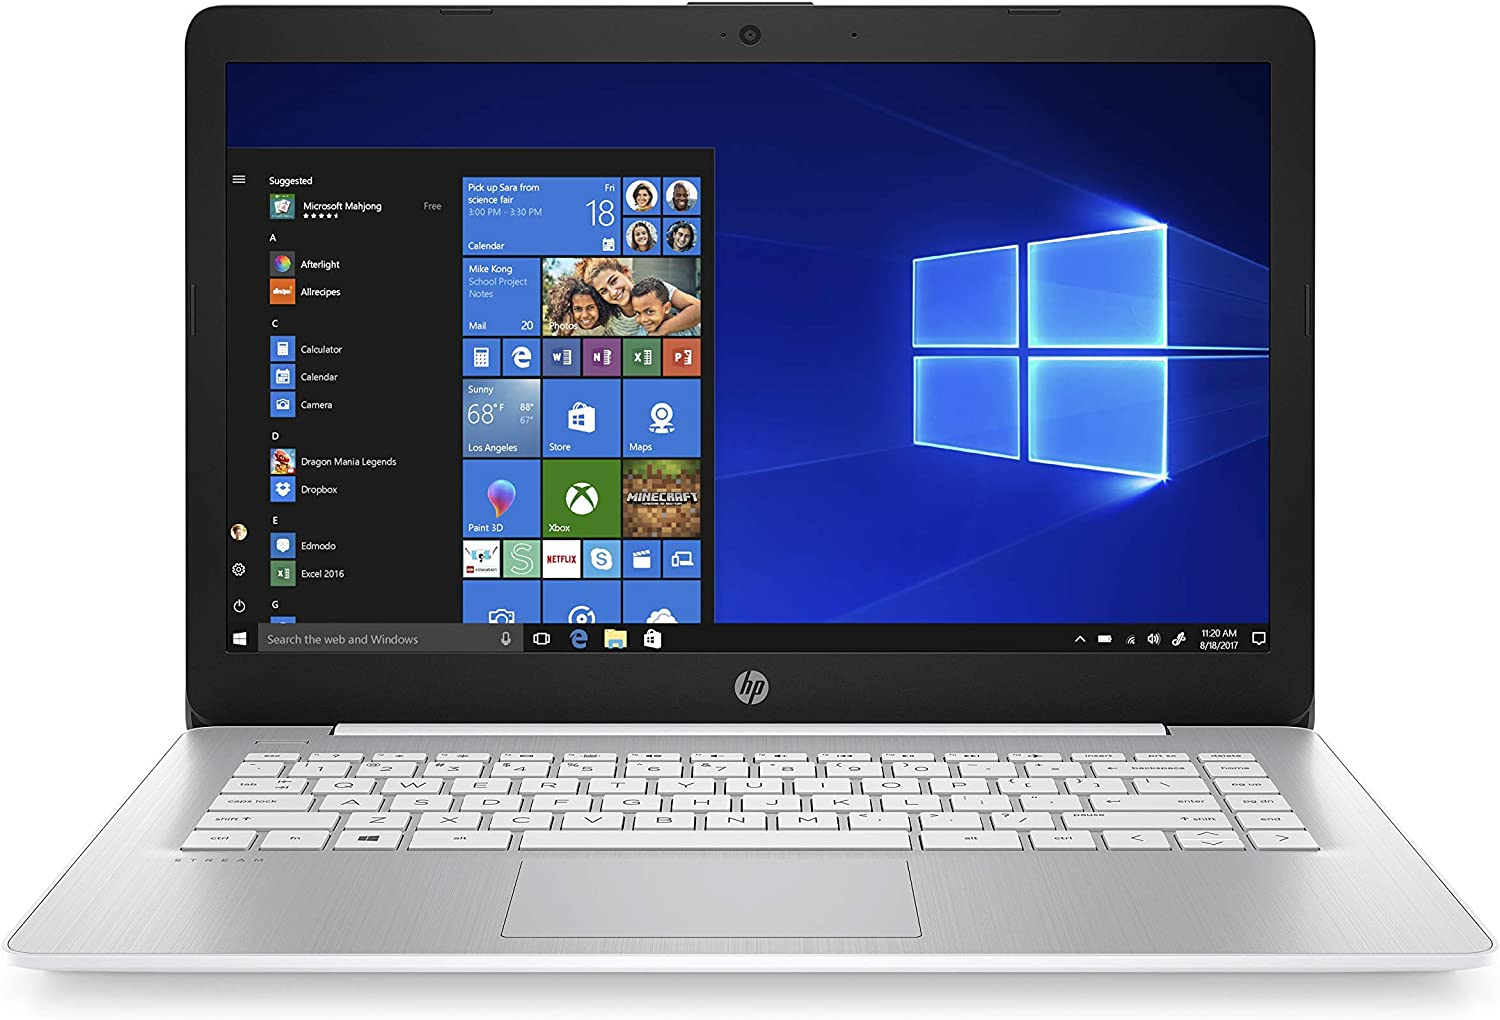 HP Stream 14-inch Laptop, Intel Celeron N4000, 4 GB RAM, 64 GB eMMC, Windows 10 Home in S Mode with Office 365 Personal for 1 Year (14-cb187nr, Diamond White) (Renewed)